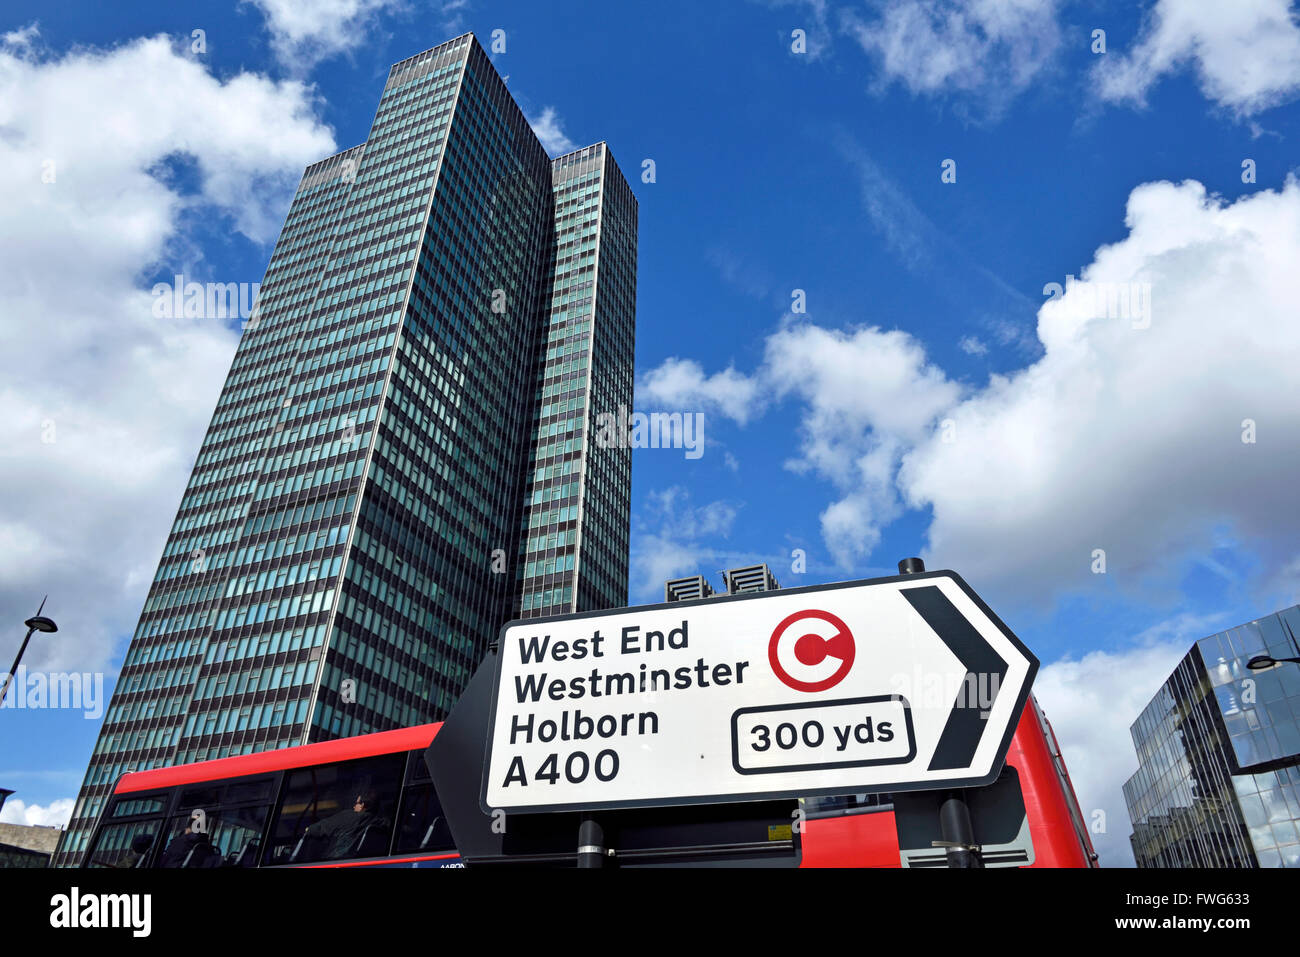 Traffic direction sign with congestion charge symbol, EustonTower in background, Euston Road Central London England - Stock Image